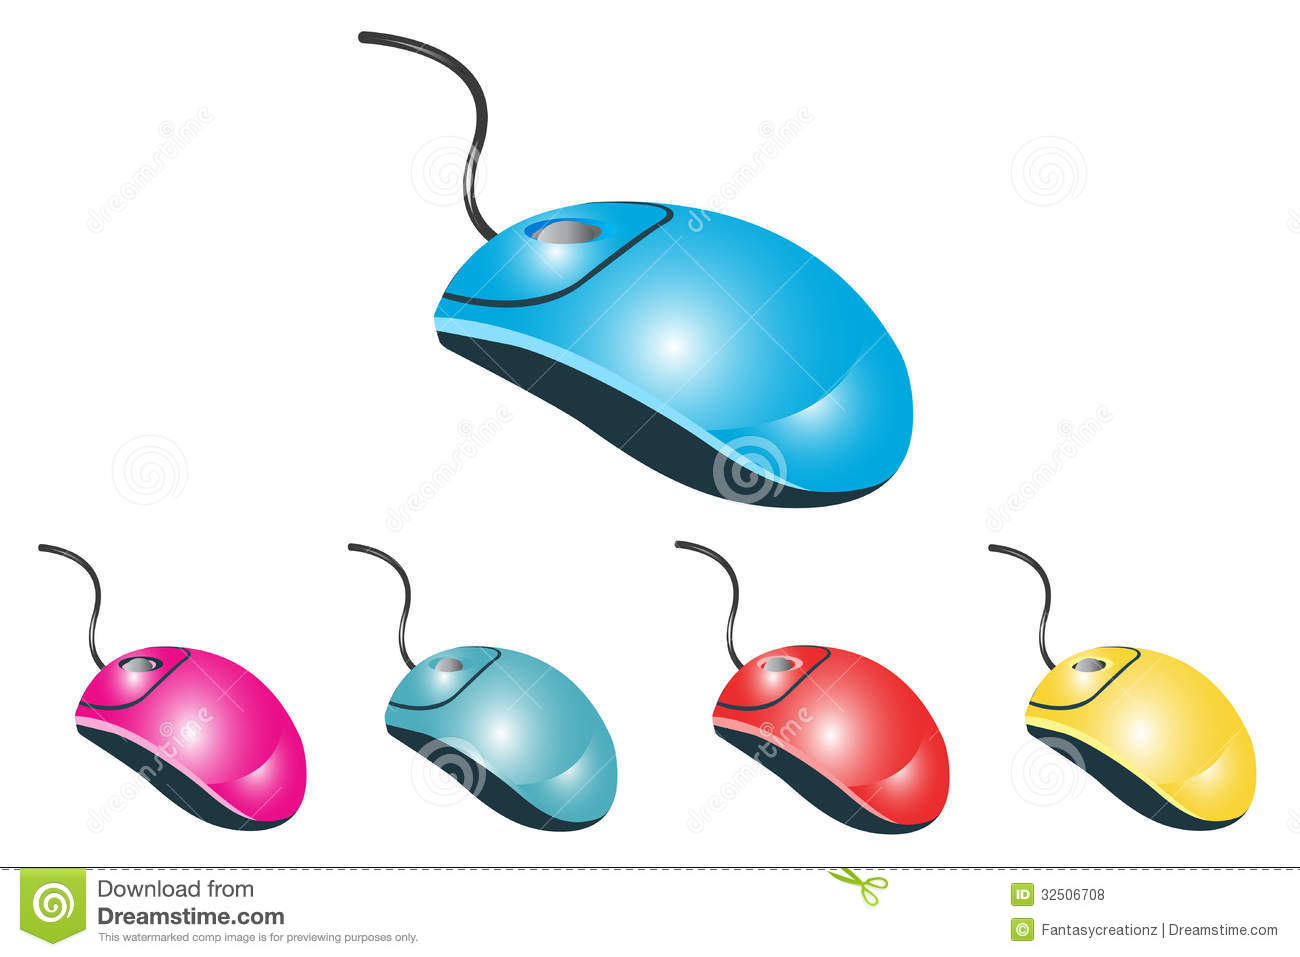 Computer Mouse Royalty Free Stock Photos - Image: 32506708